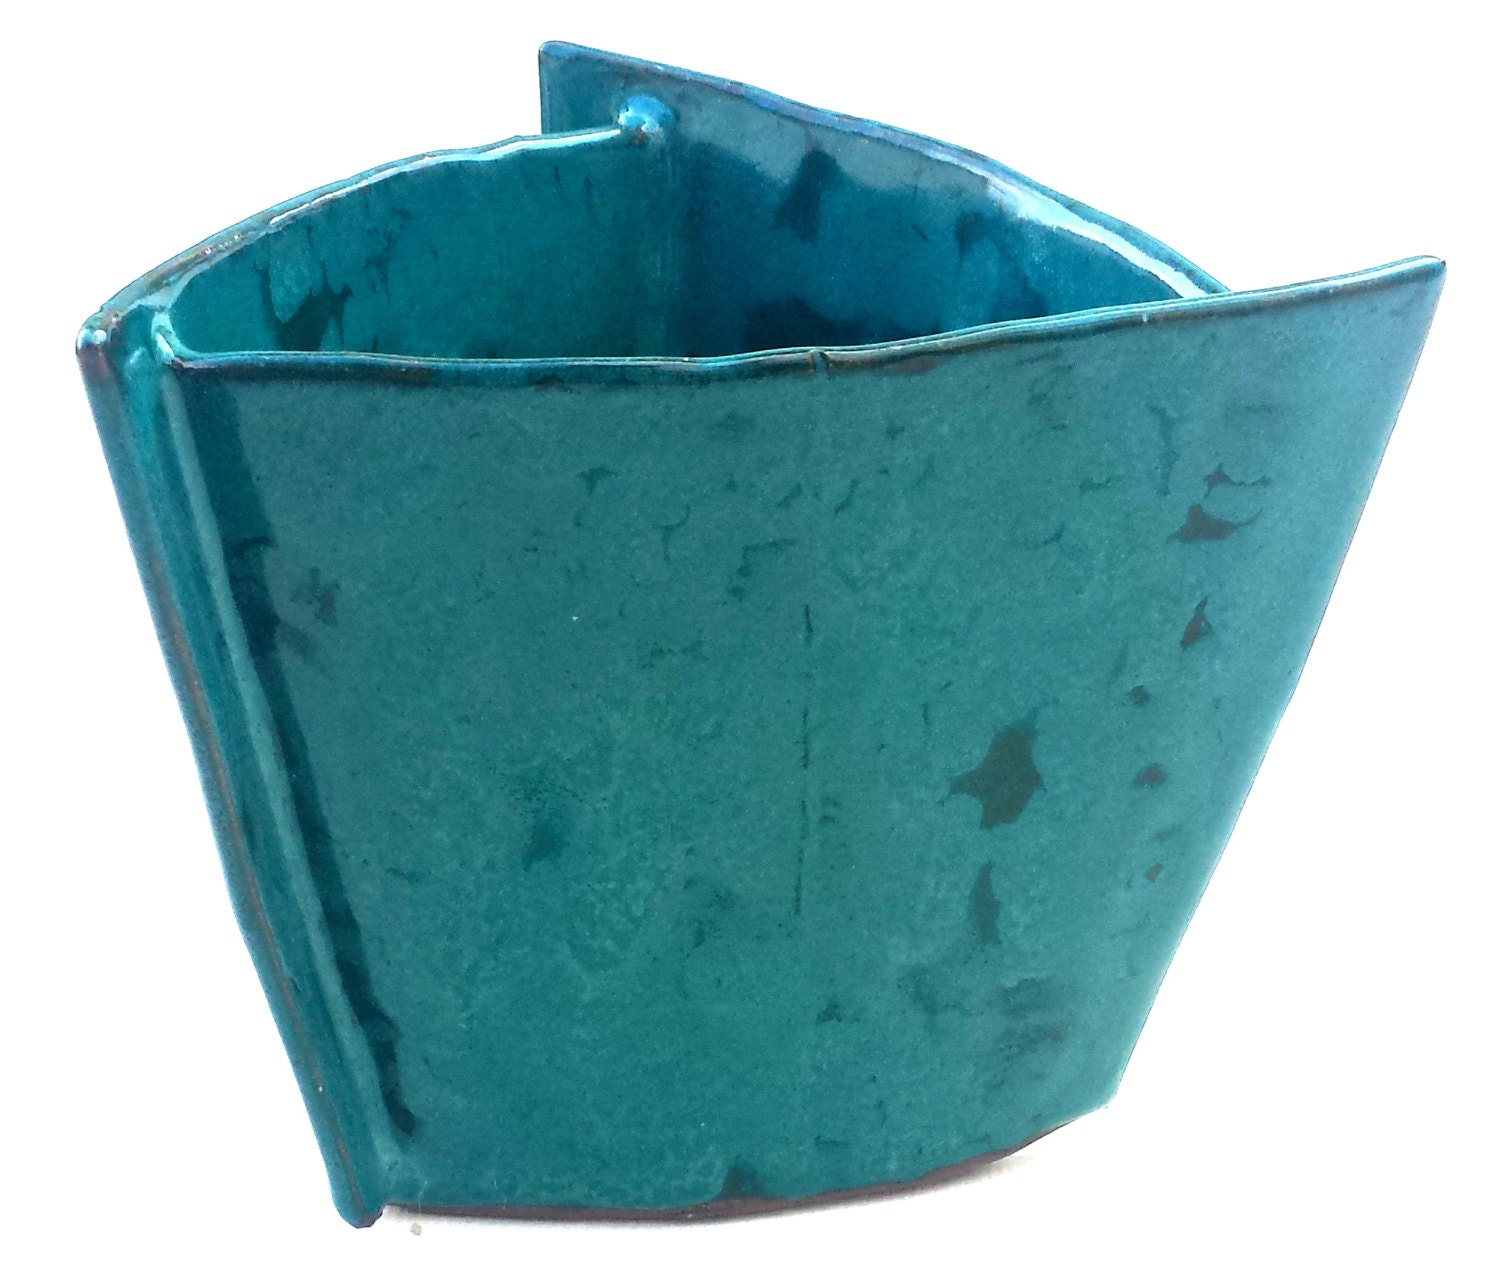 Turquoise Triangular Planter Small Triangle Pot Colorful